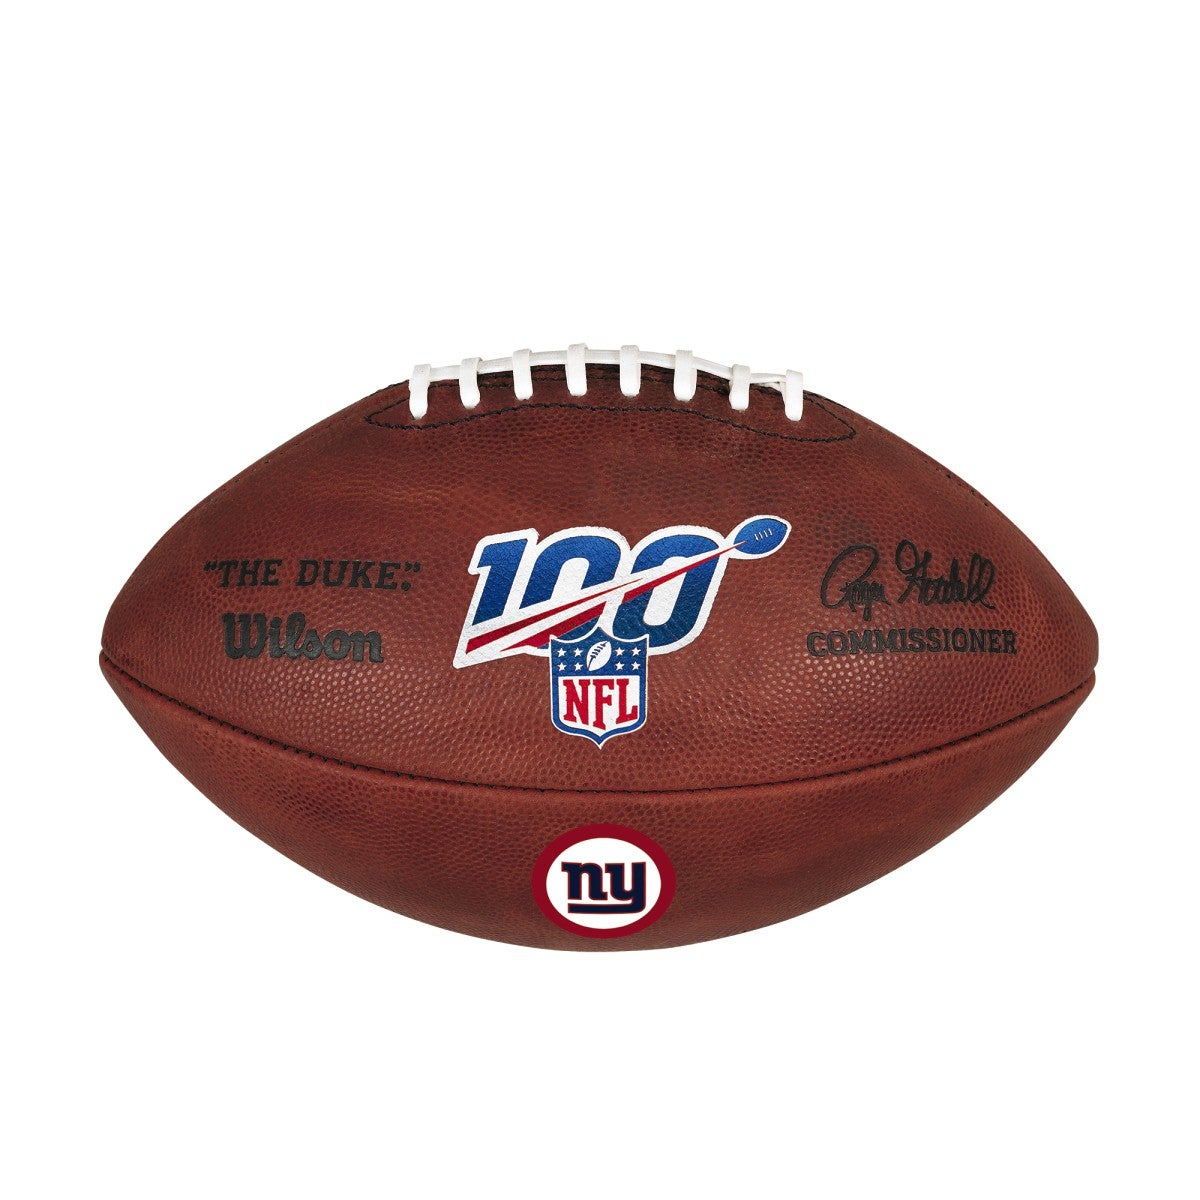 NFL 100 THE DUKE DECAL NFL FOOTBALL - NEW YORK GIANTS